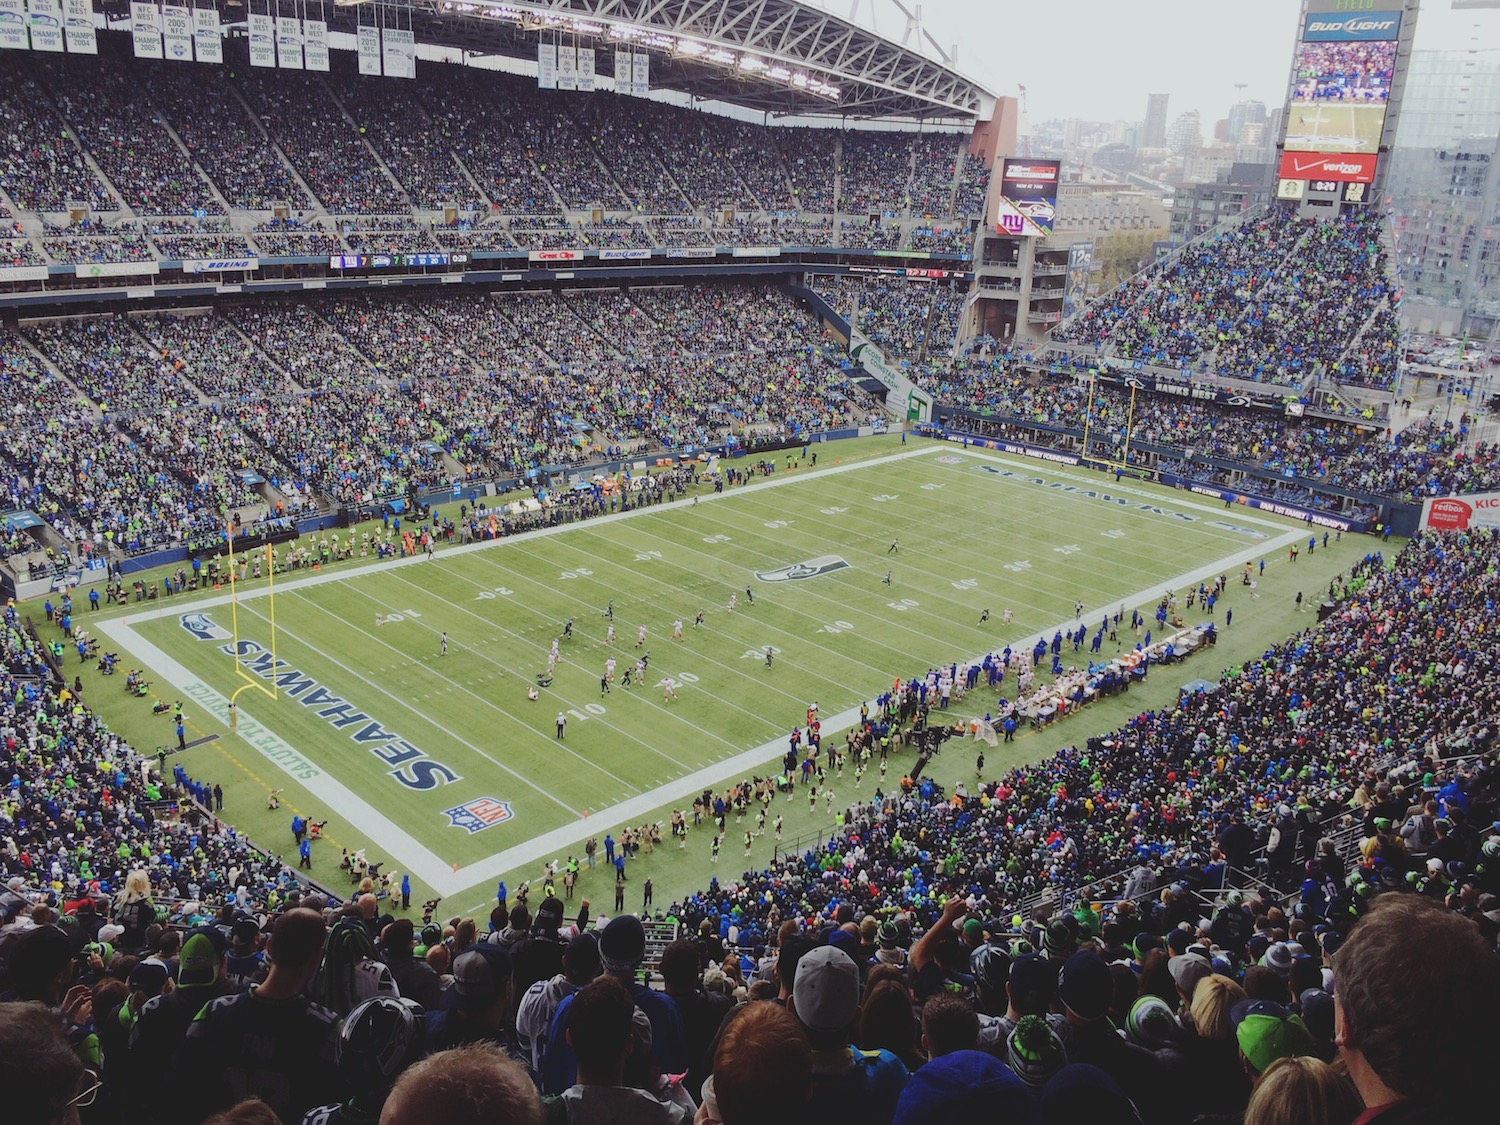 My first Seahawks game! I can't recall ever screaming that loudly in my life.